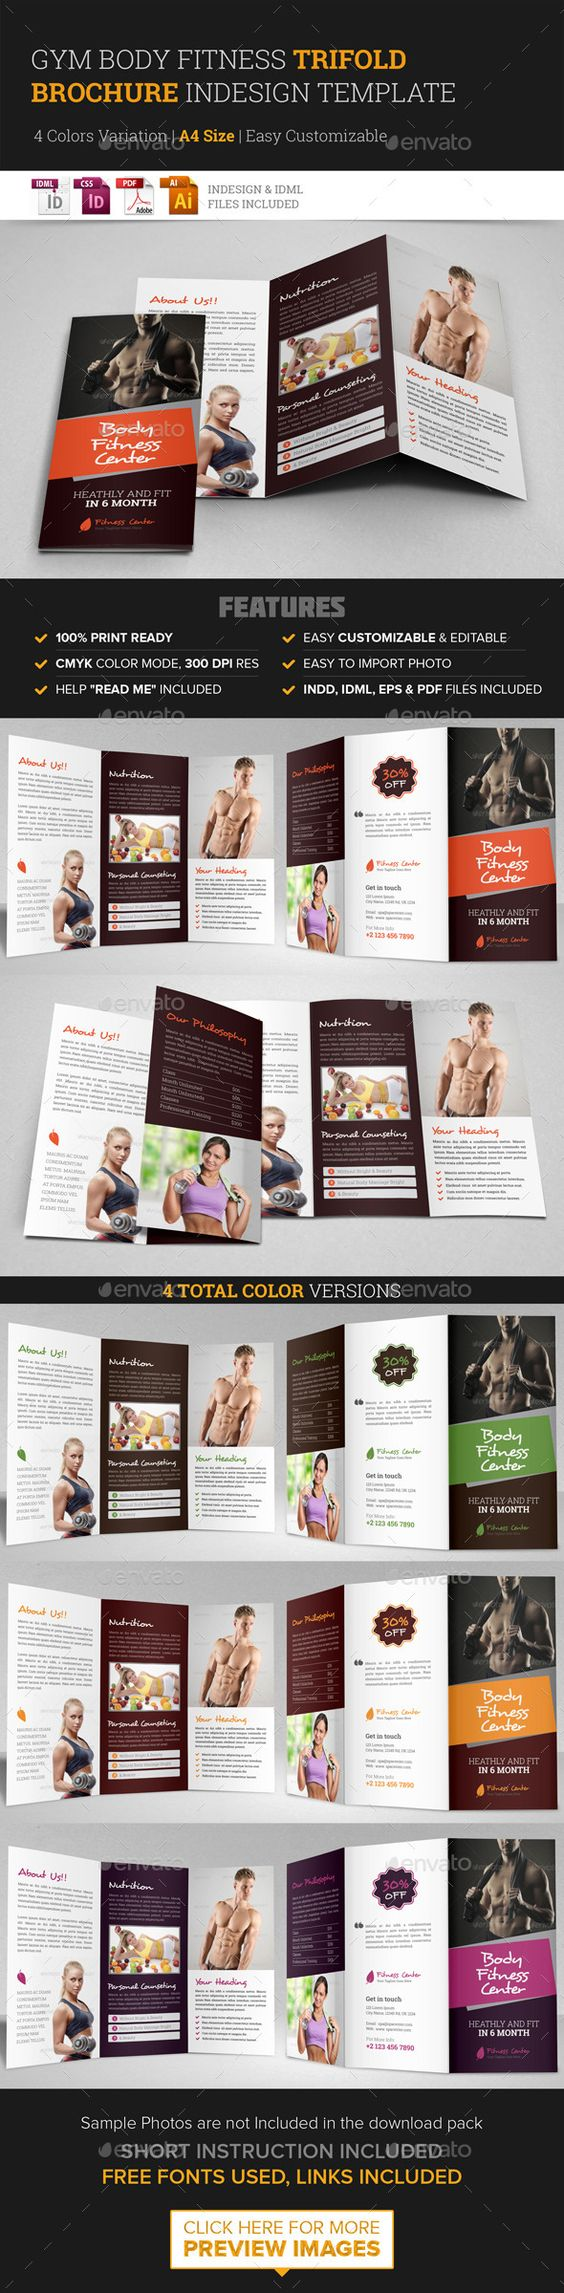 Gym Fitness Trifold Brochure Indesign Template – Gym Brochure Templates